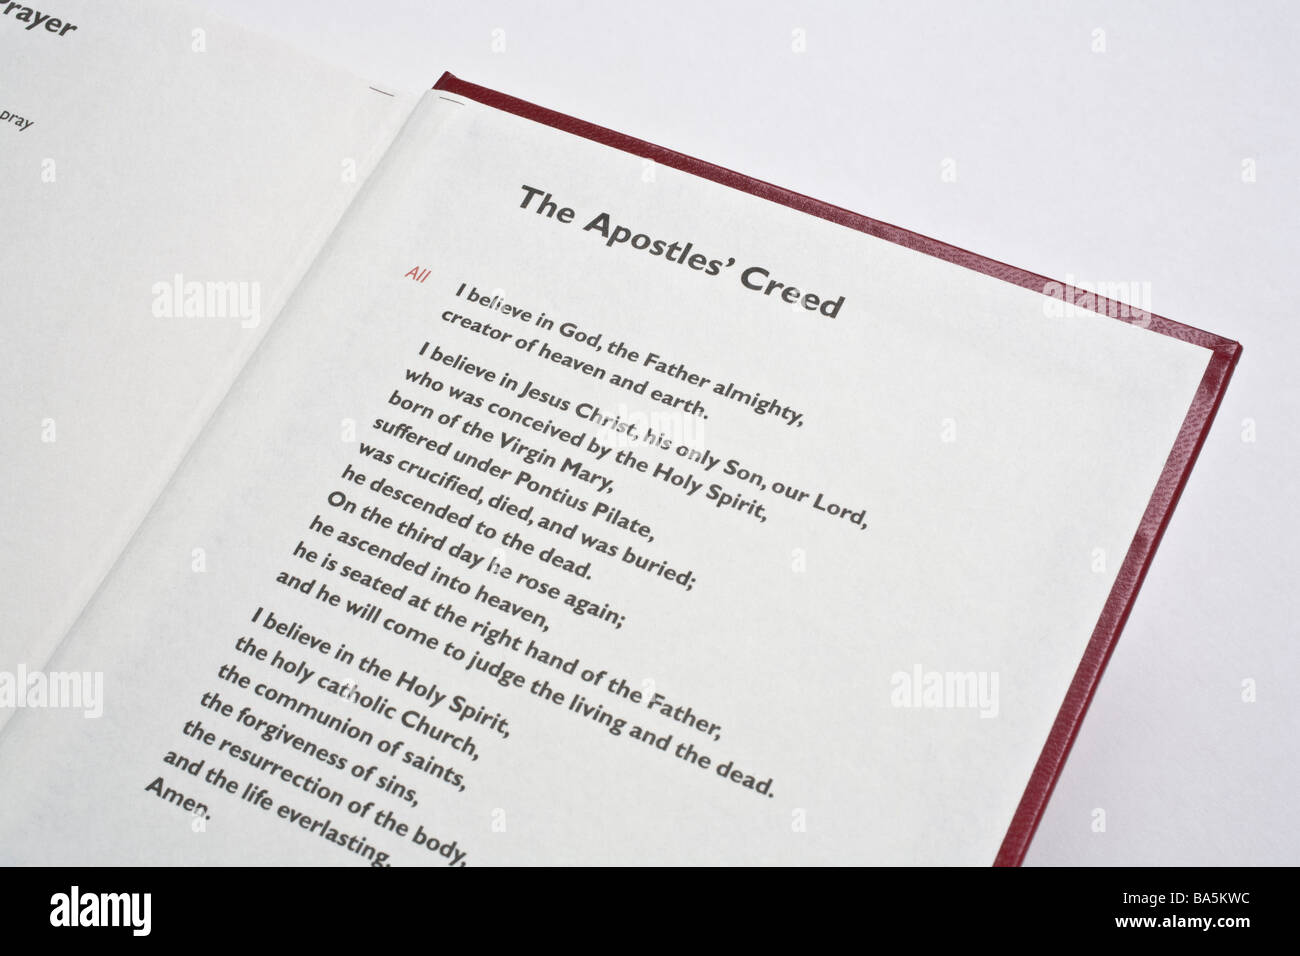 Apostles Creed Christian prayer printed in a book of prayers - Stock Image